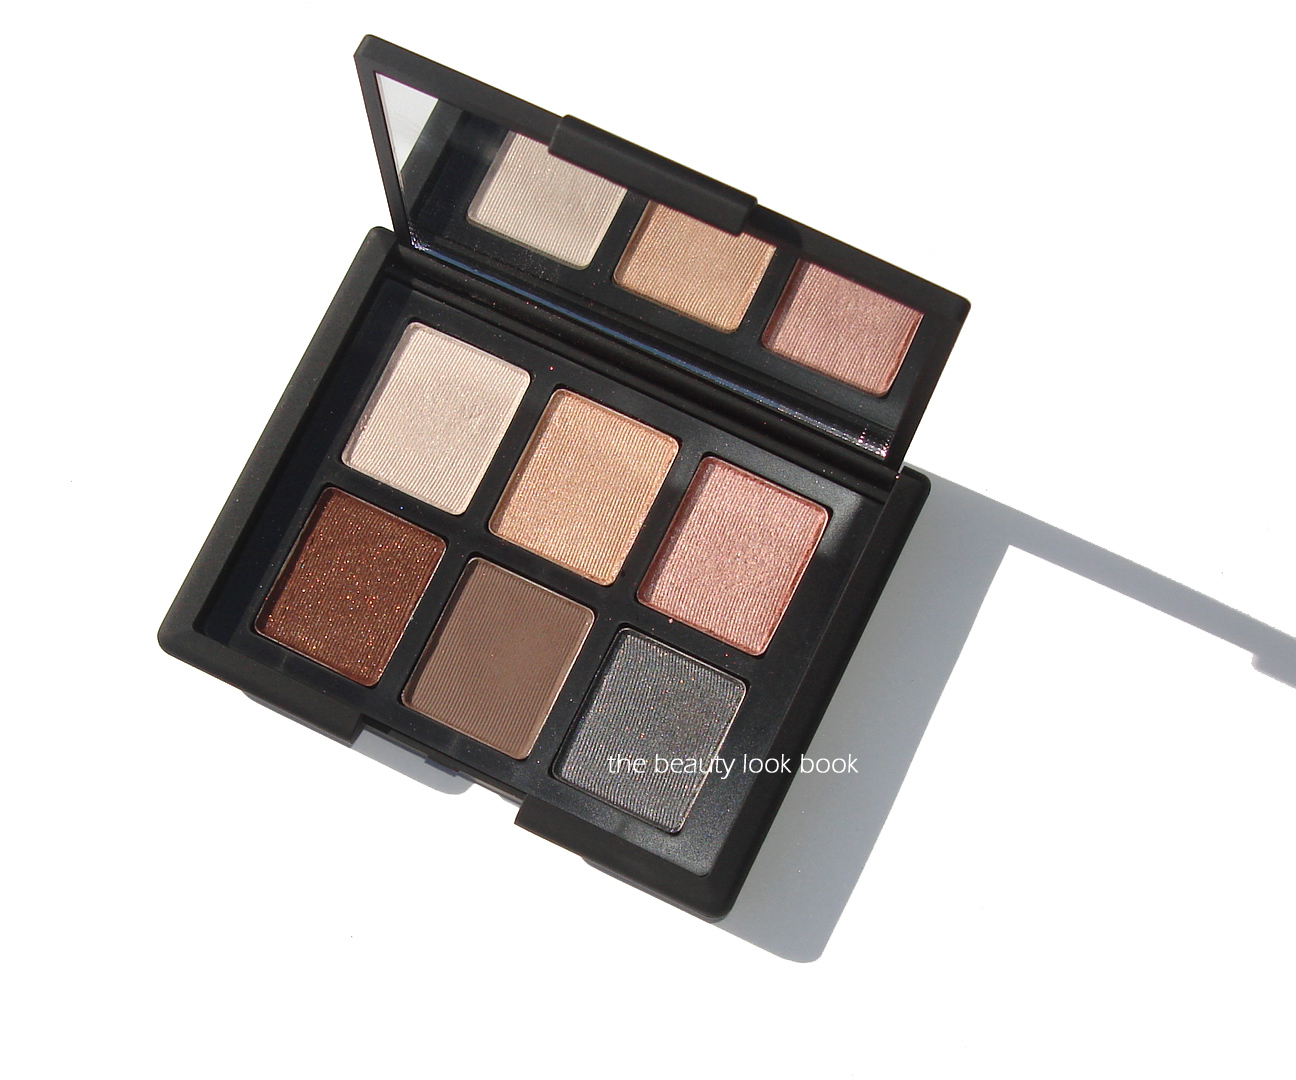 Book color palette - This Fall Nars Has Released Two New Variations Of Their 6 Color Eyeshadow Palettes Product Girl Gave Us A Sneak Peek From An Event She Attended In July